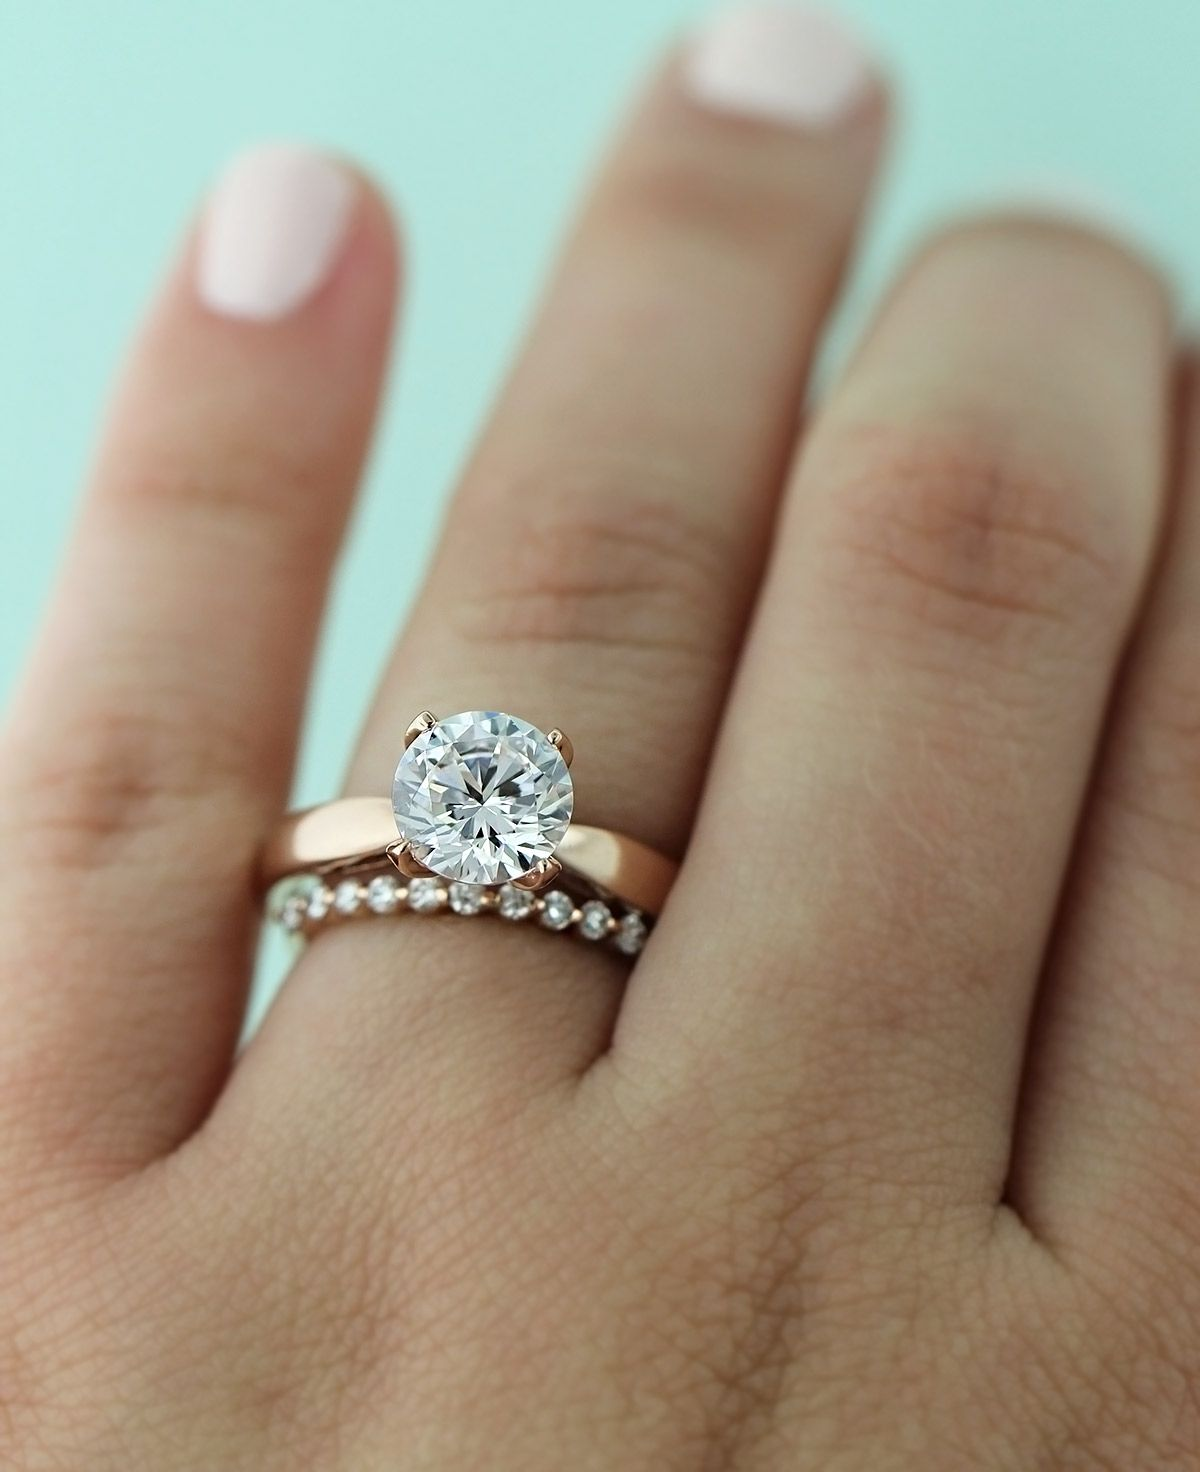 Rose Gold Engagement Ring With Willow Wedding Band  Mix And Match Wedding  Set!